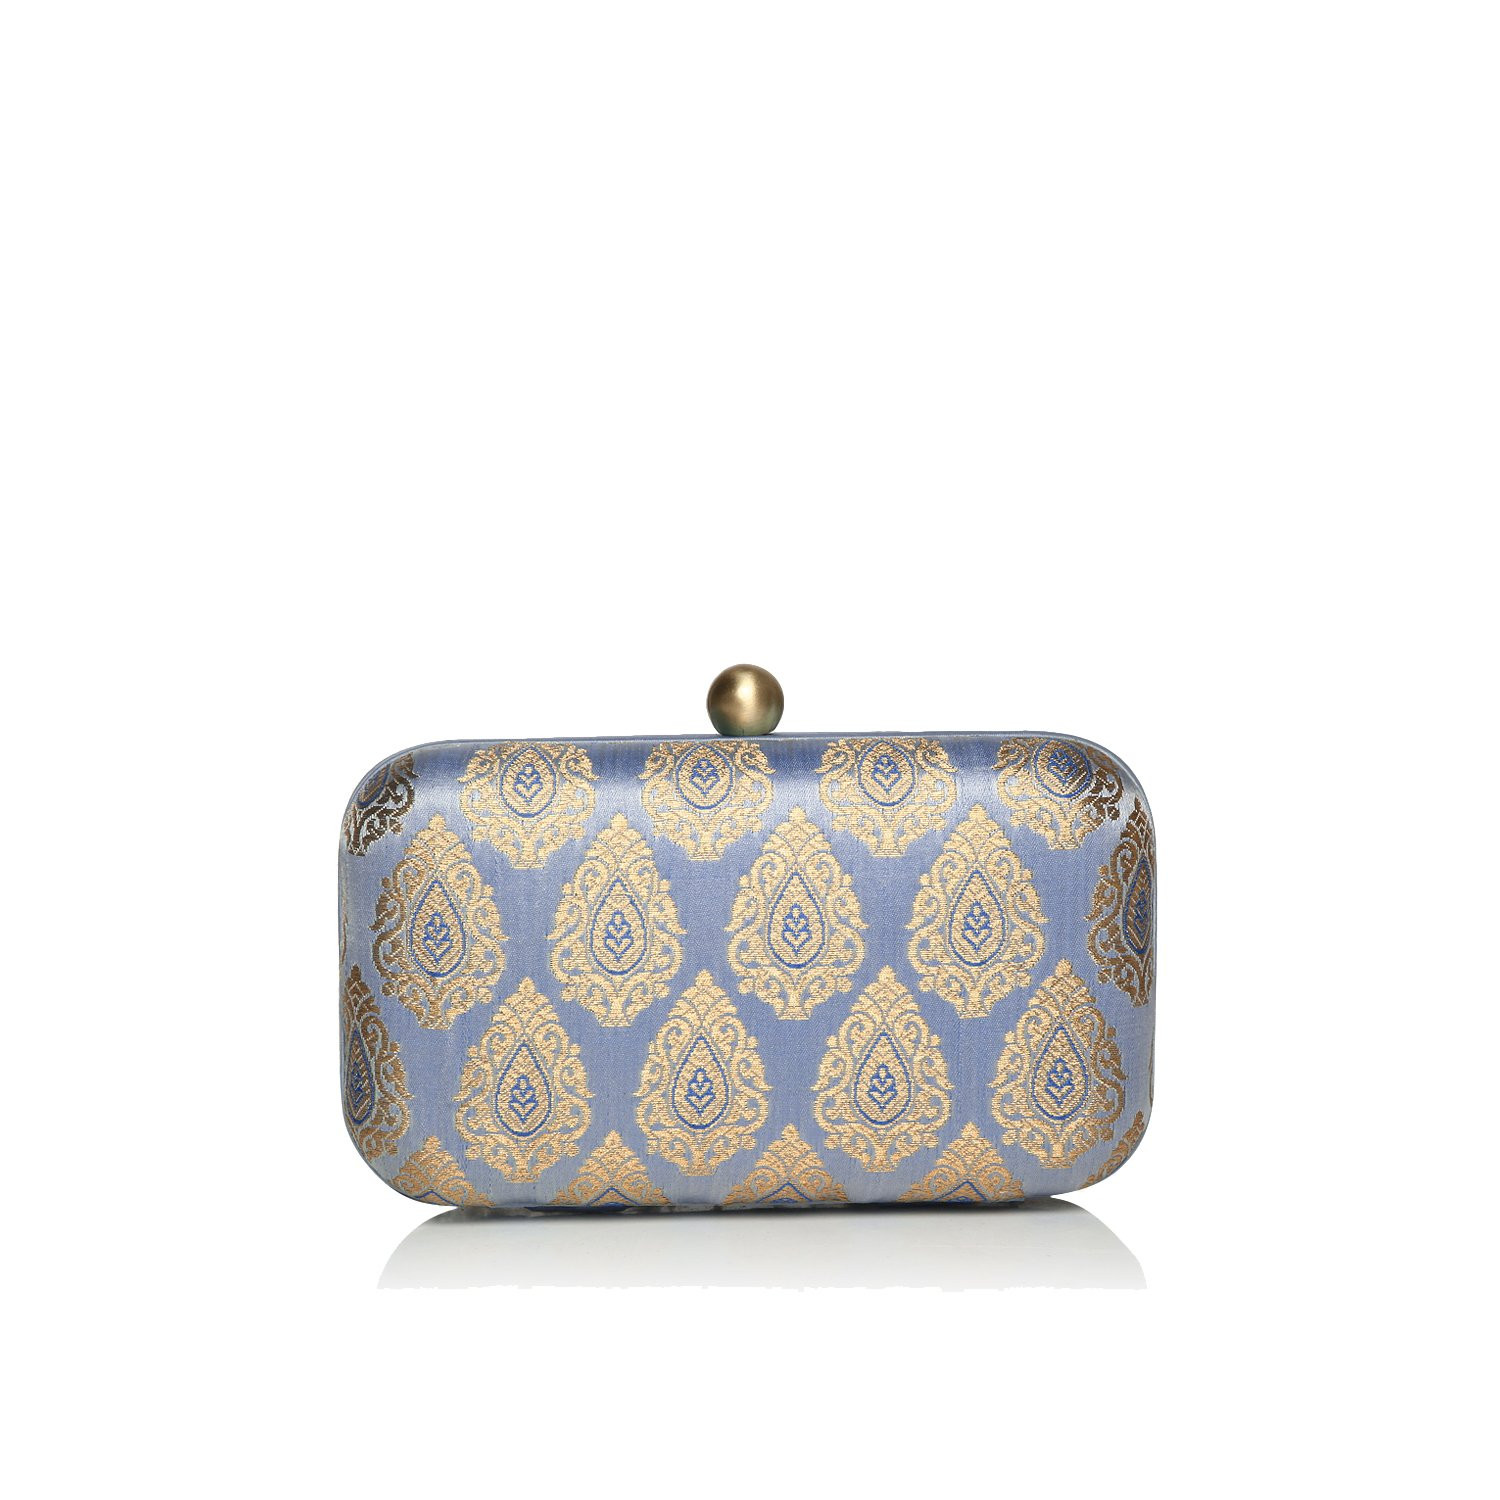 Riverdale stylish hardcase silk jacquard ethnic party evening clutches for women by Monokrome New York (large, powder blue)